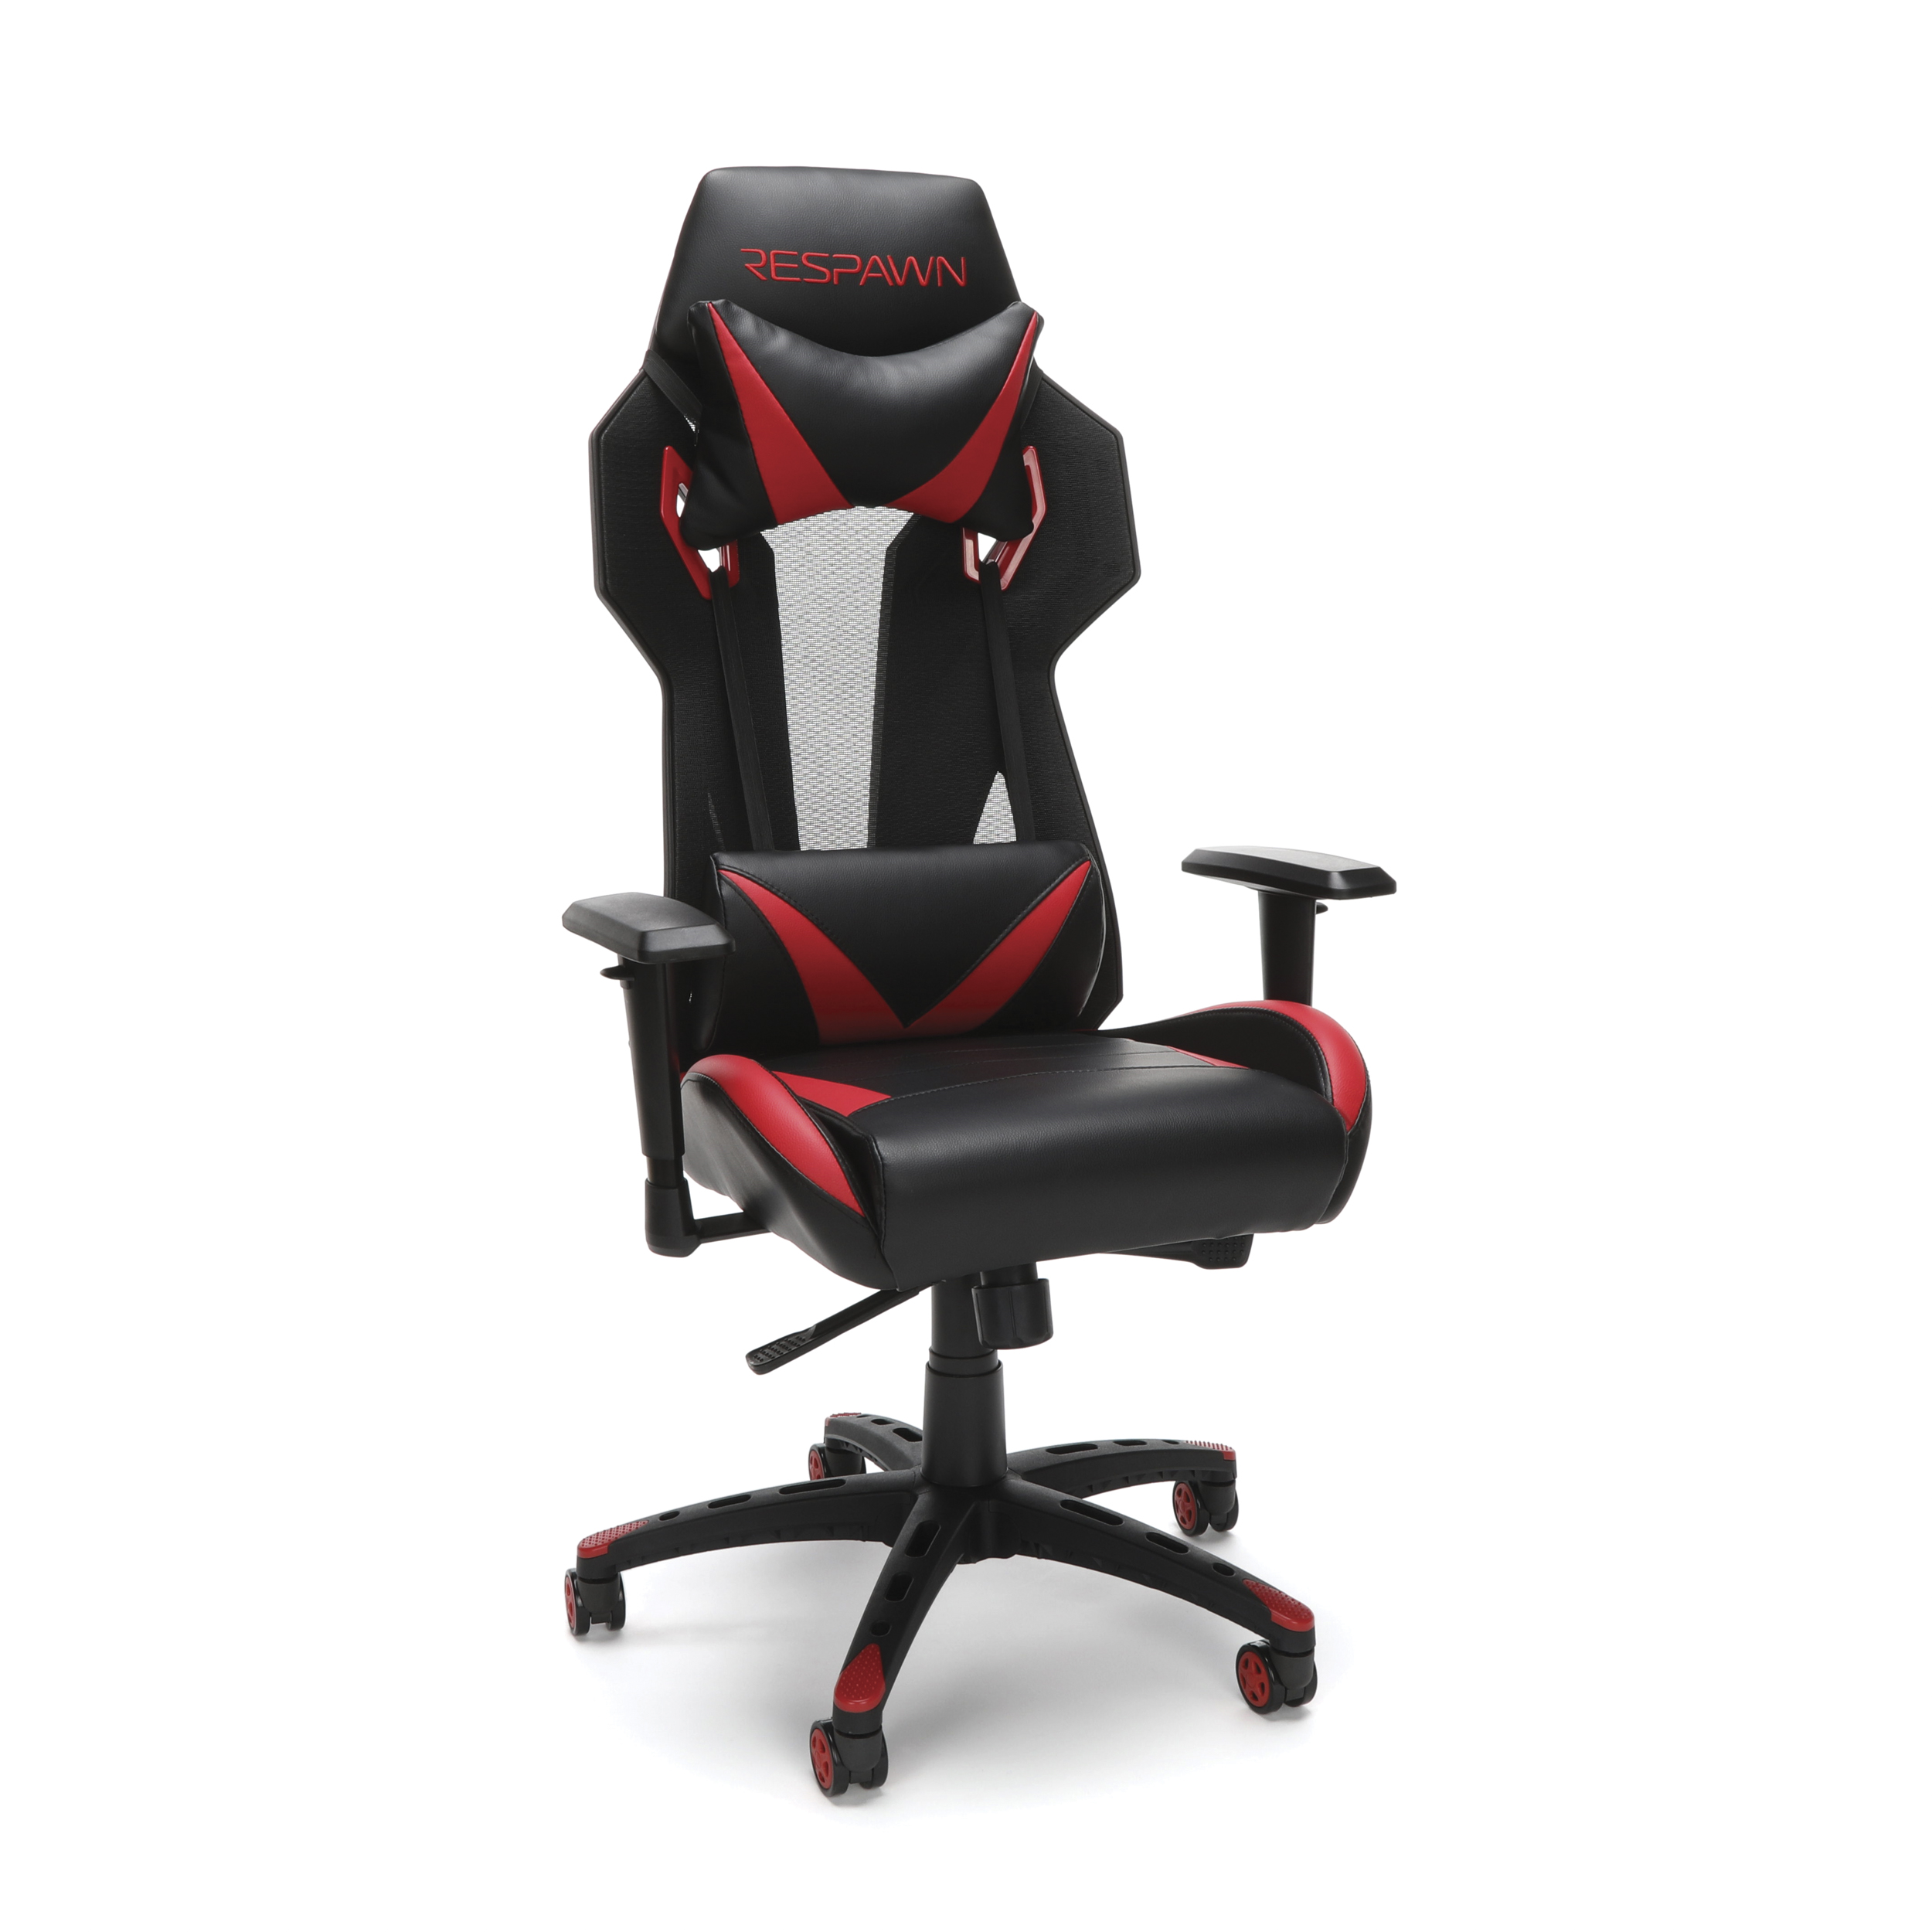 RESPAWN-205 Racing Style Gaming Chair - Ergonomic Performance Mesh Back Chair, Office or Gaming Chair, Red (RSP-205)